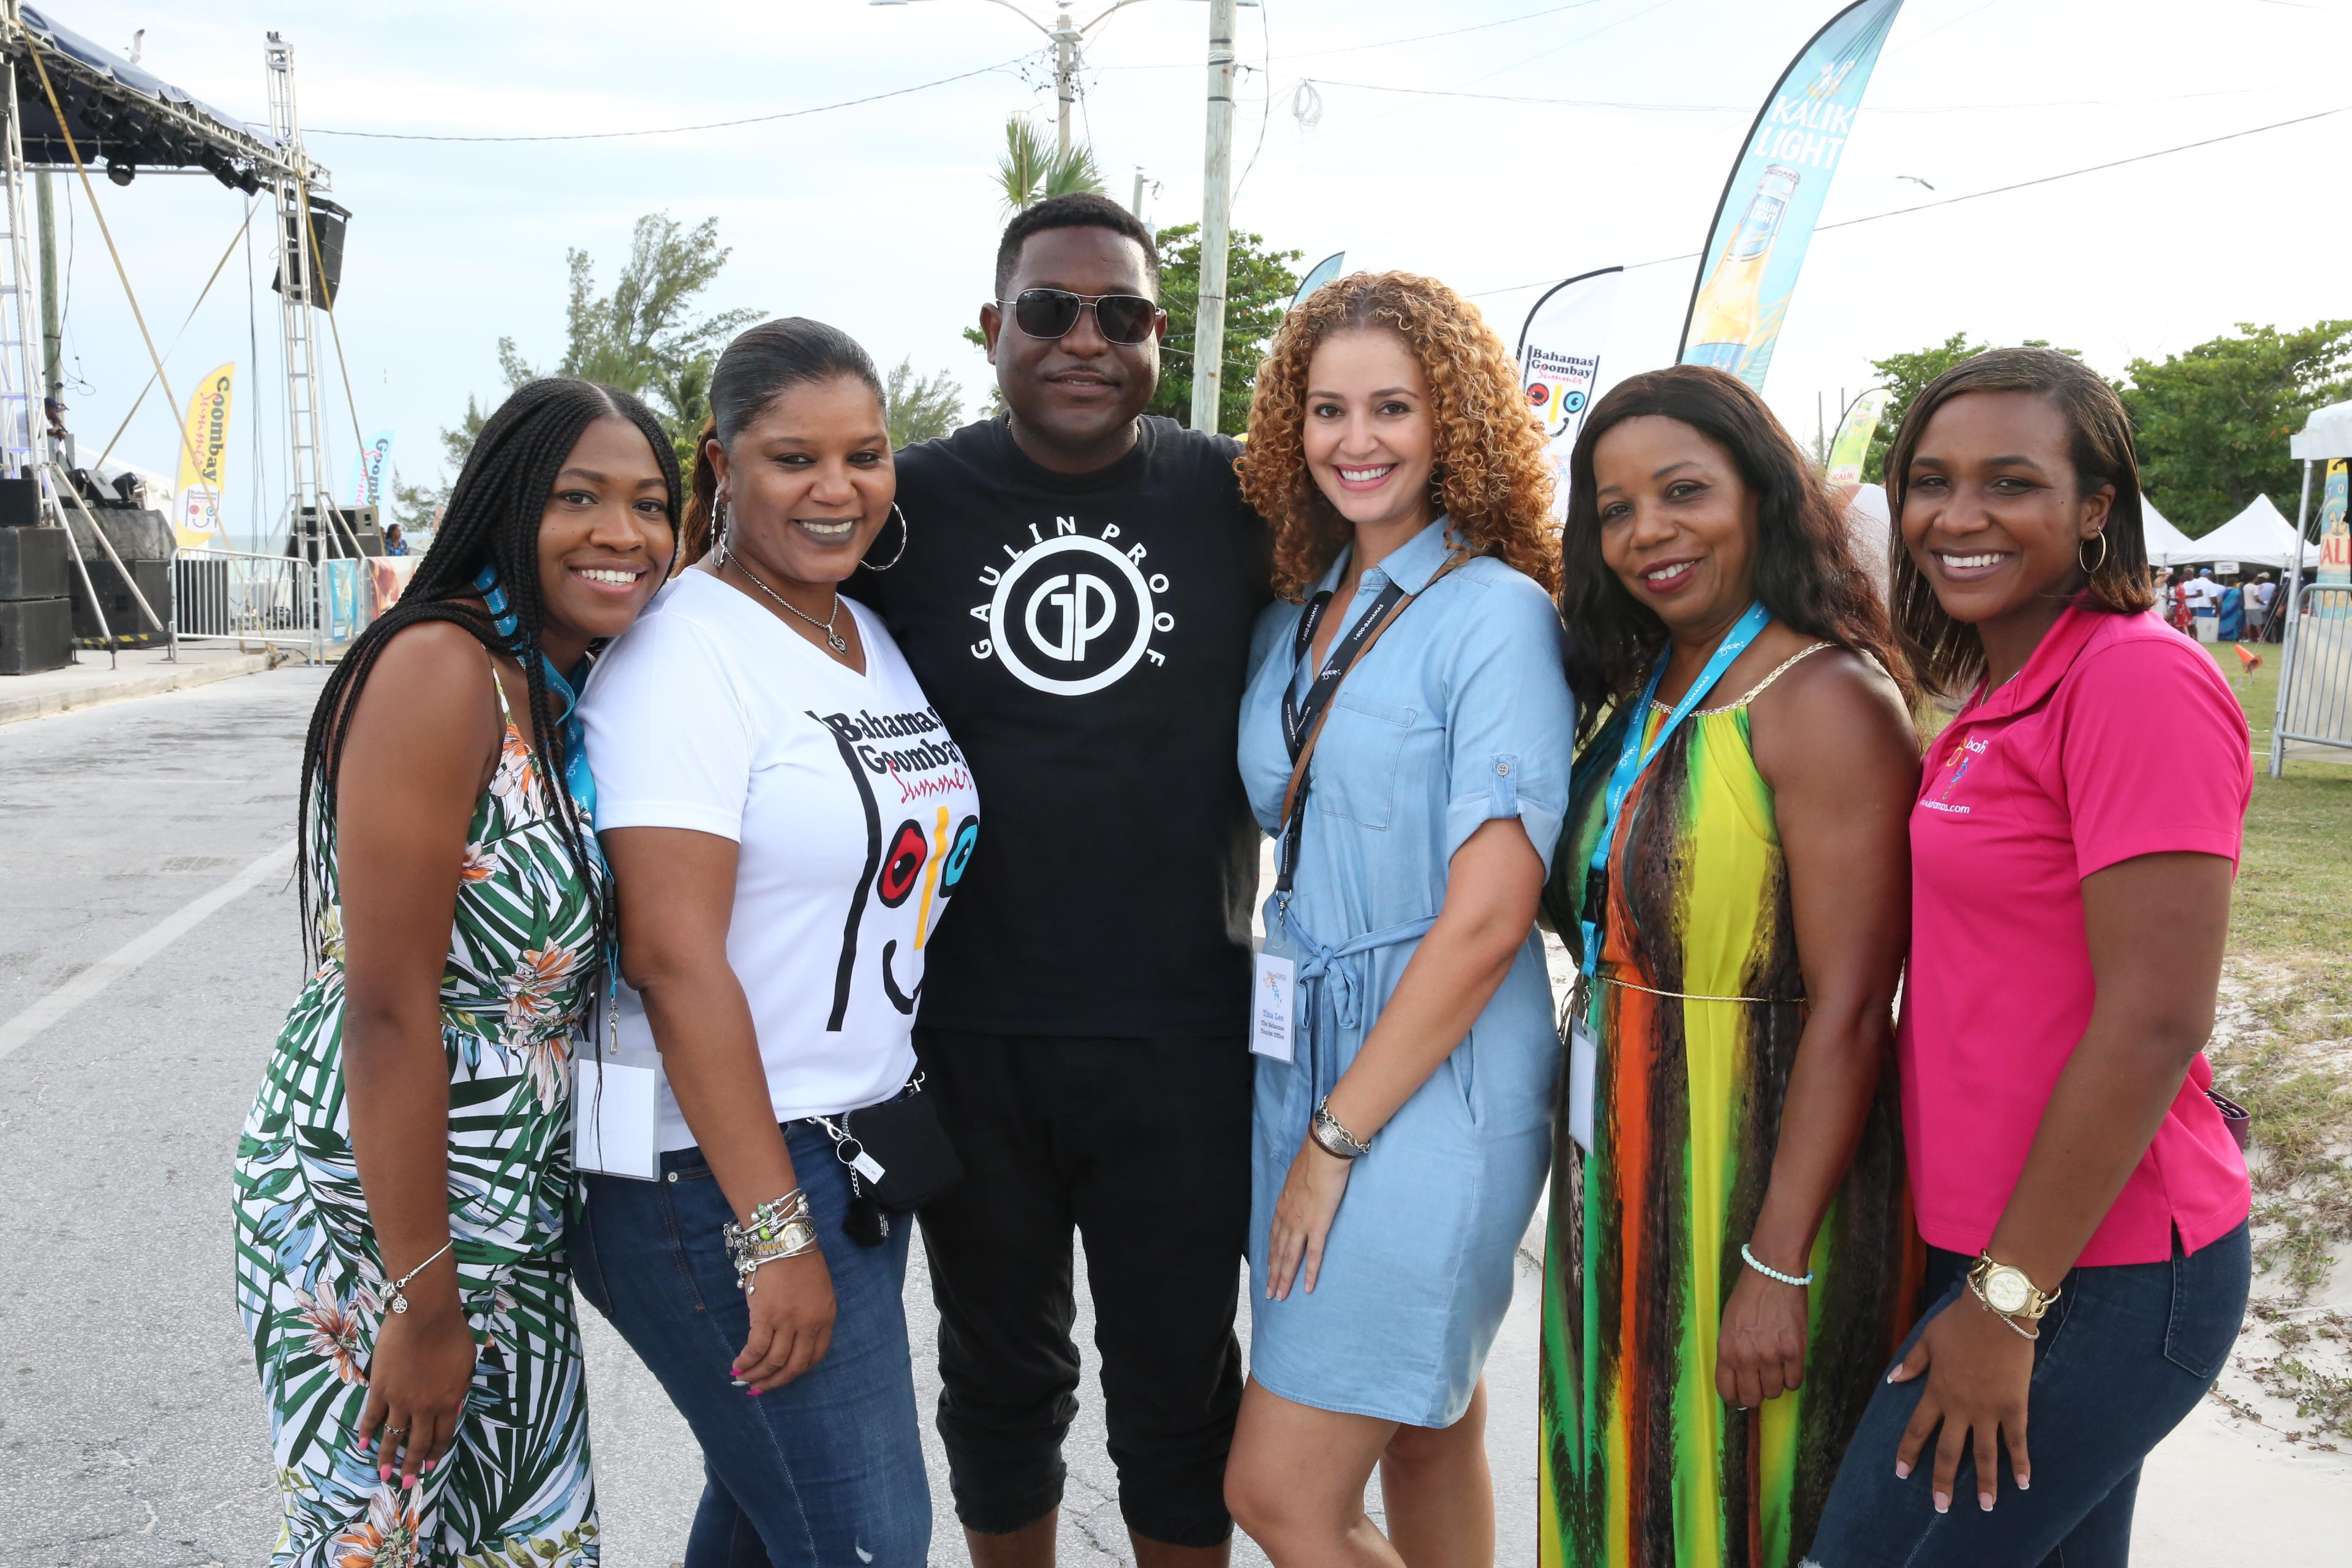 Shown from left to right at the Goombay Summer Festival in Freeport is Phylia Shivers BTO Florida; Sanique Culmer Bahamas Ministry of Tourism & Aviation  Freeport; D-Mac, entertainer; Tina Lee BTO Florida; Anita Johnson-Patty, BTO-Global Communications; a